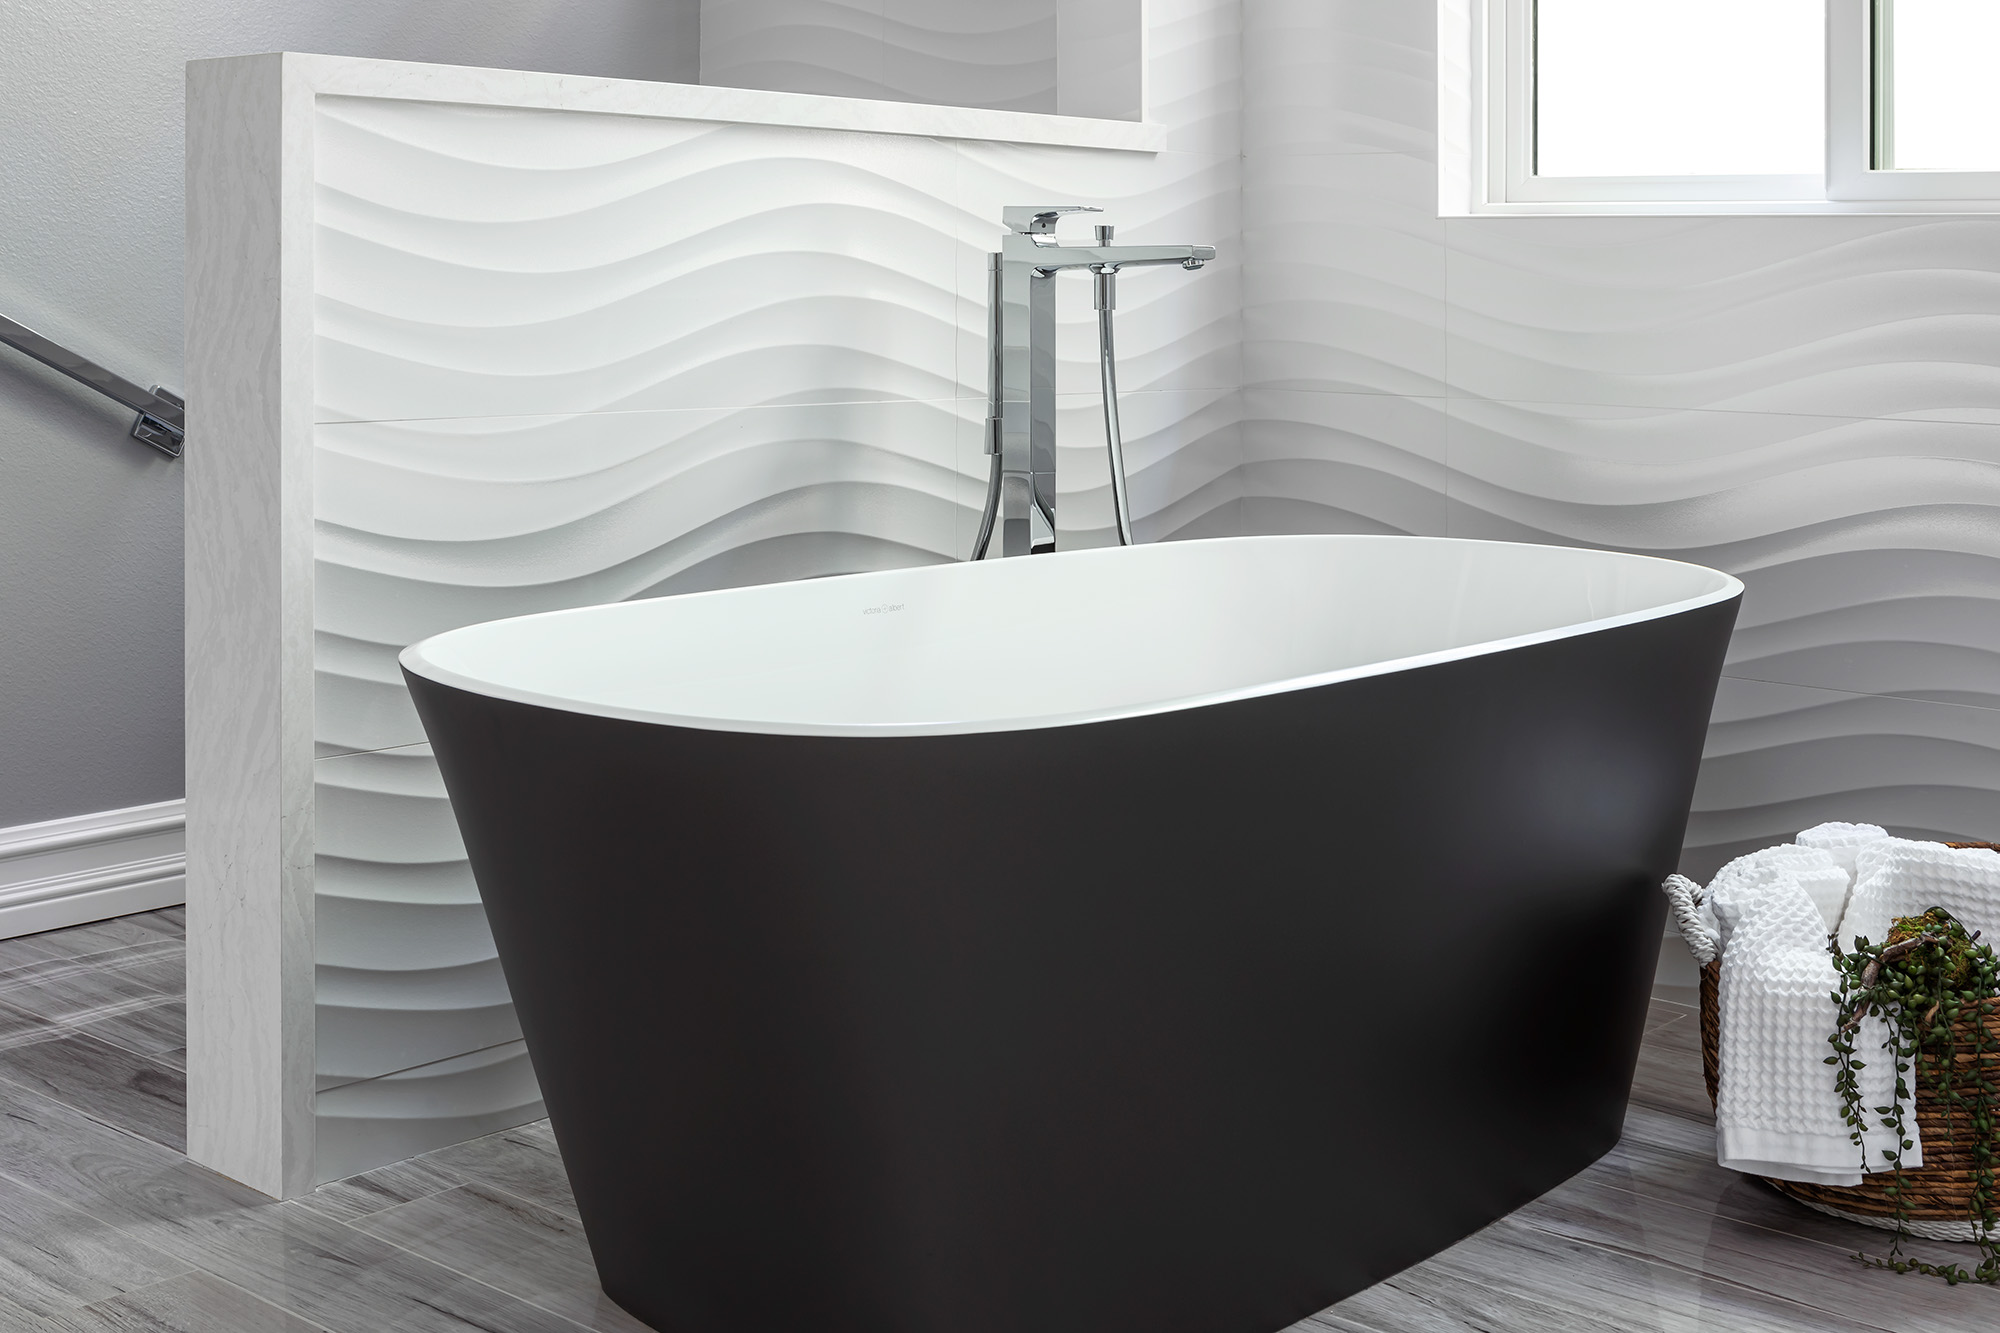 Master-Tub-with-Pony-Wall-in-Corona-del-Mar-Remodel